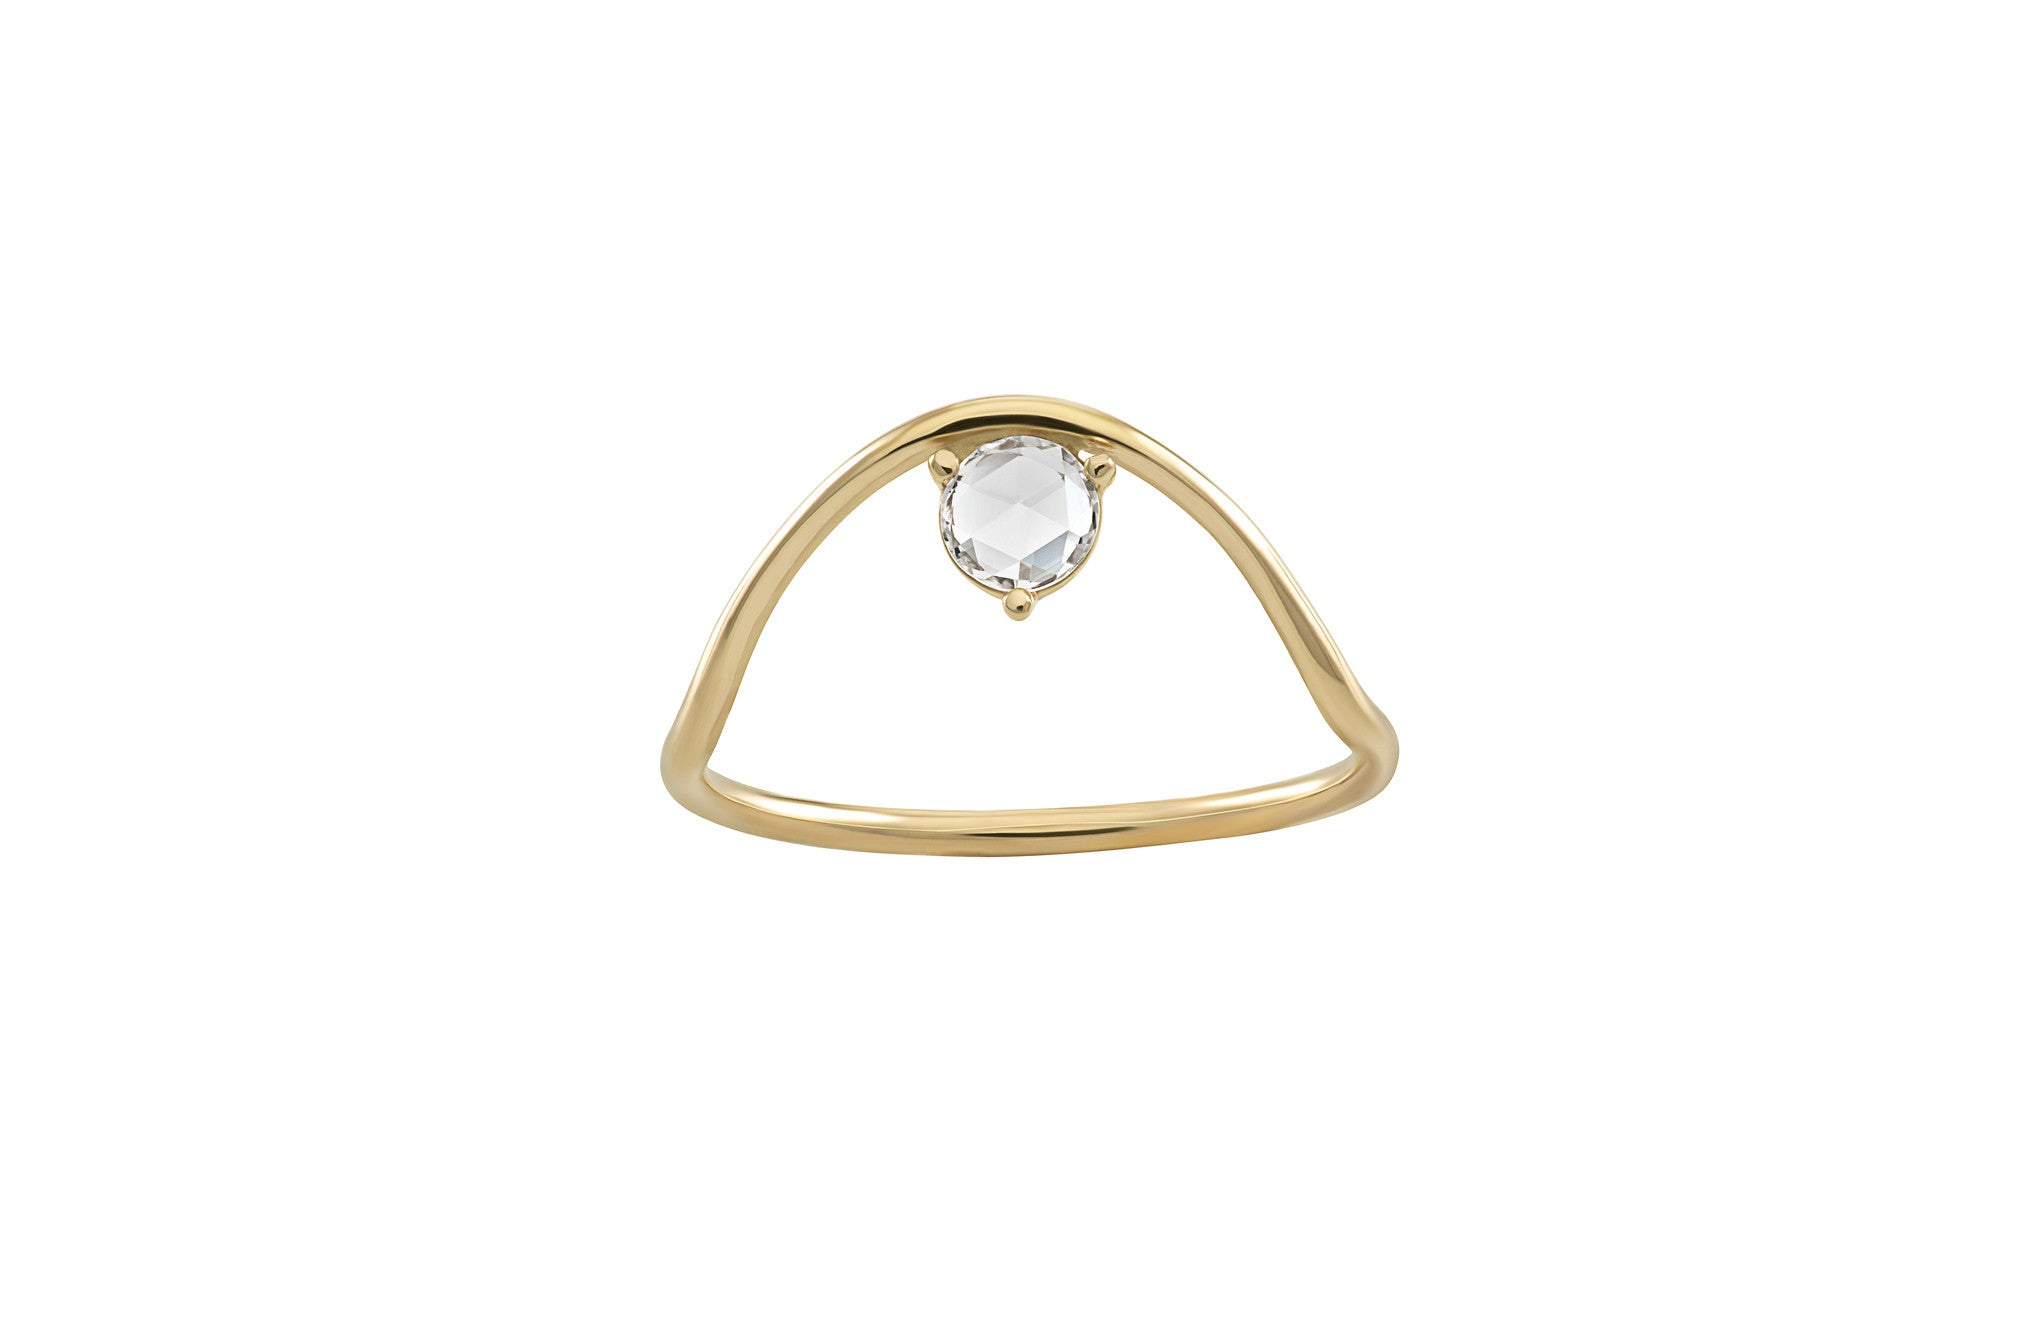 Sloped Arc Rose Cut Diamond Ring